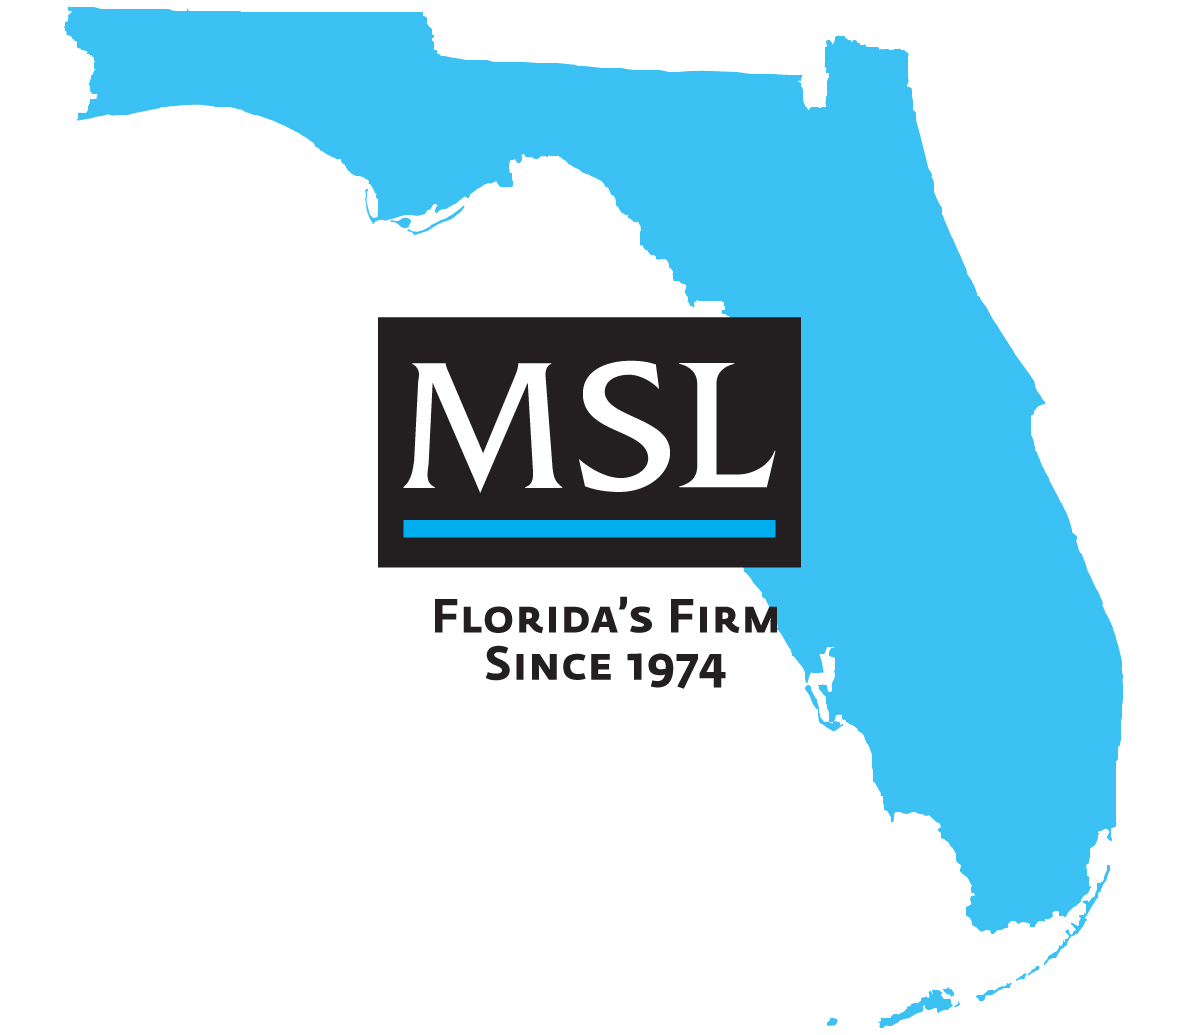 FLORIDA'S FIRM SINCE 1974